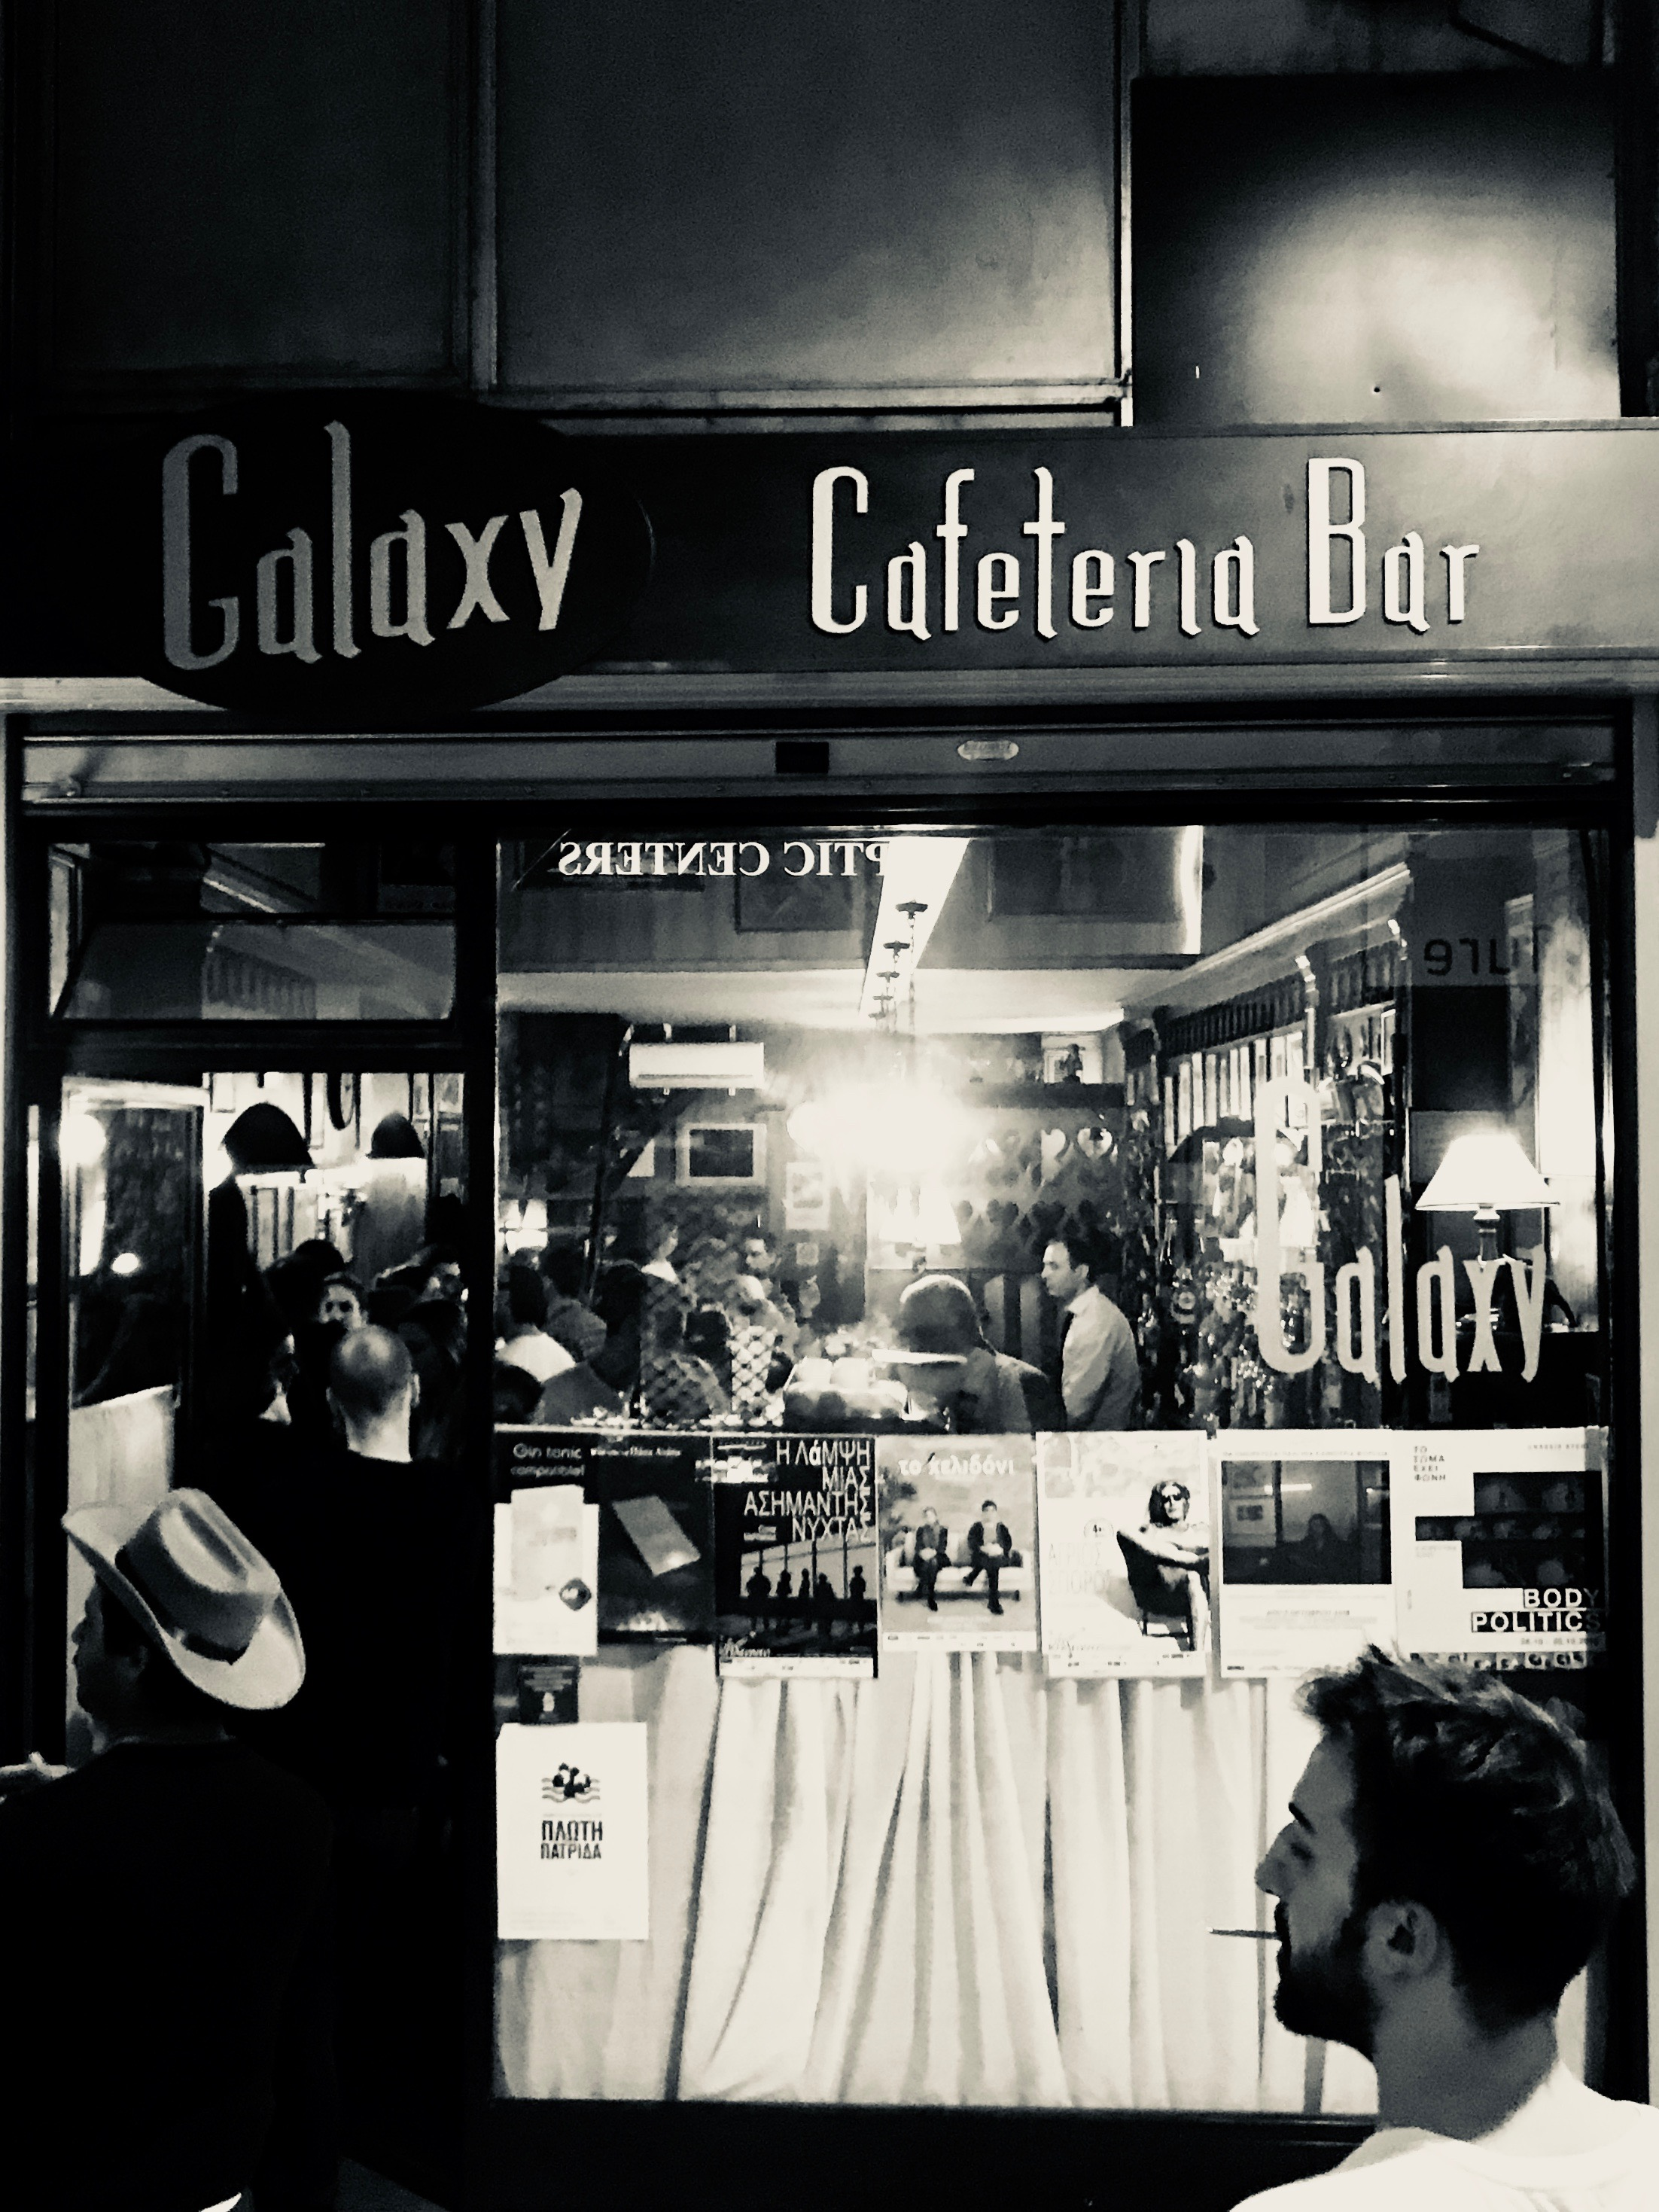 Bar Galaxy in Athens, Greece